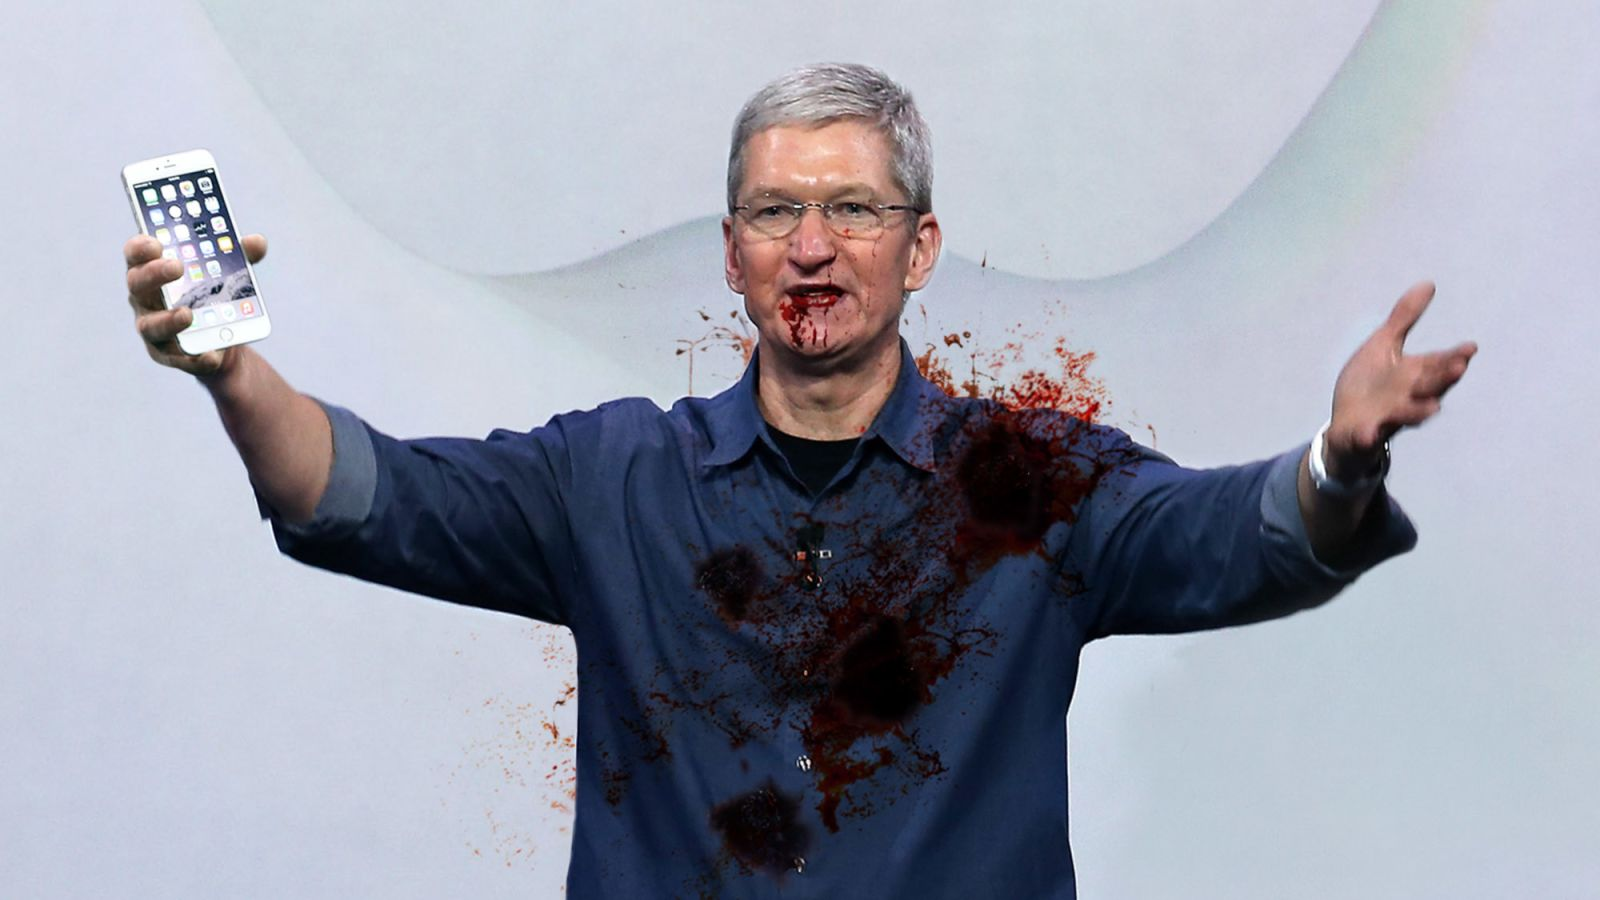 1600x900 - Tim Cook Wallpapers 7